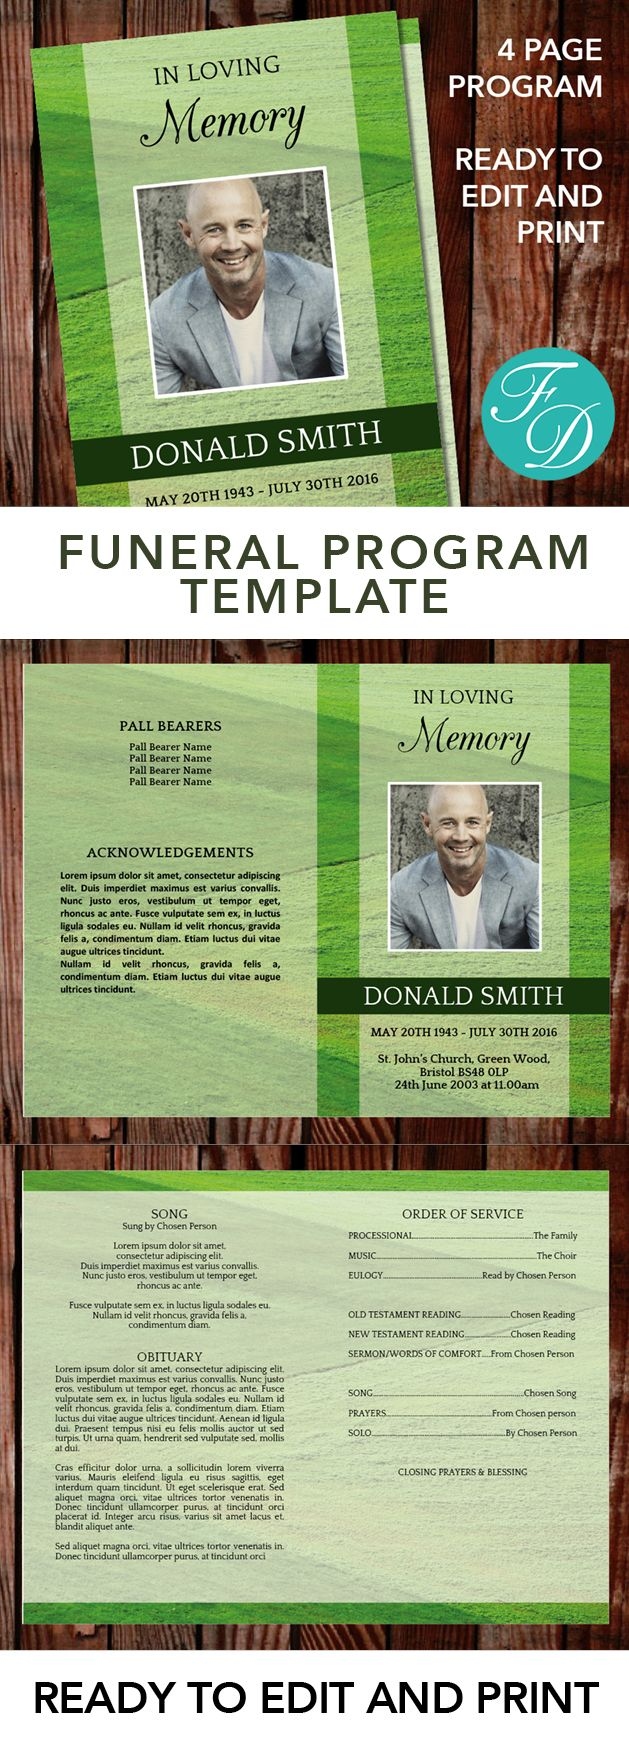 Green Printable Funeral program ready to edit & print. Simply purchase your funeral templates, download, edit with Microsoft Word and print. #obituarytemplate #memorialprogram #funeralprograms #funeraltemplate #printableprogram #celebrationoflife